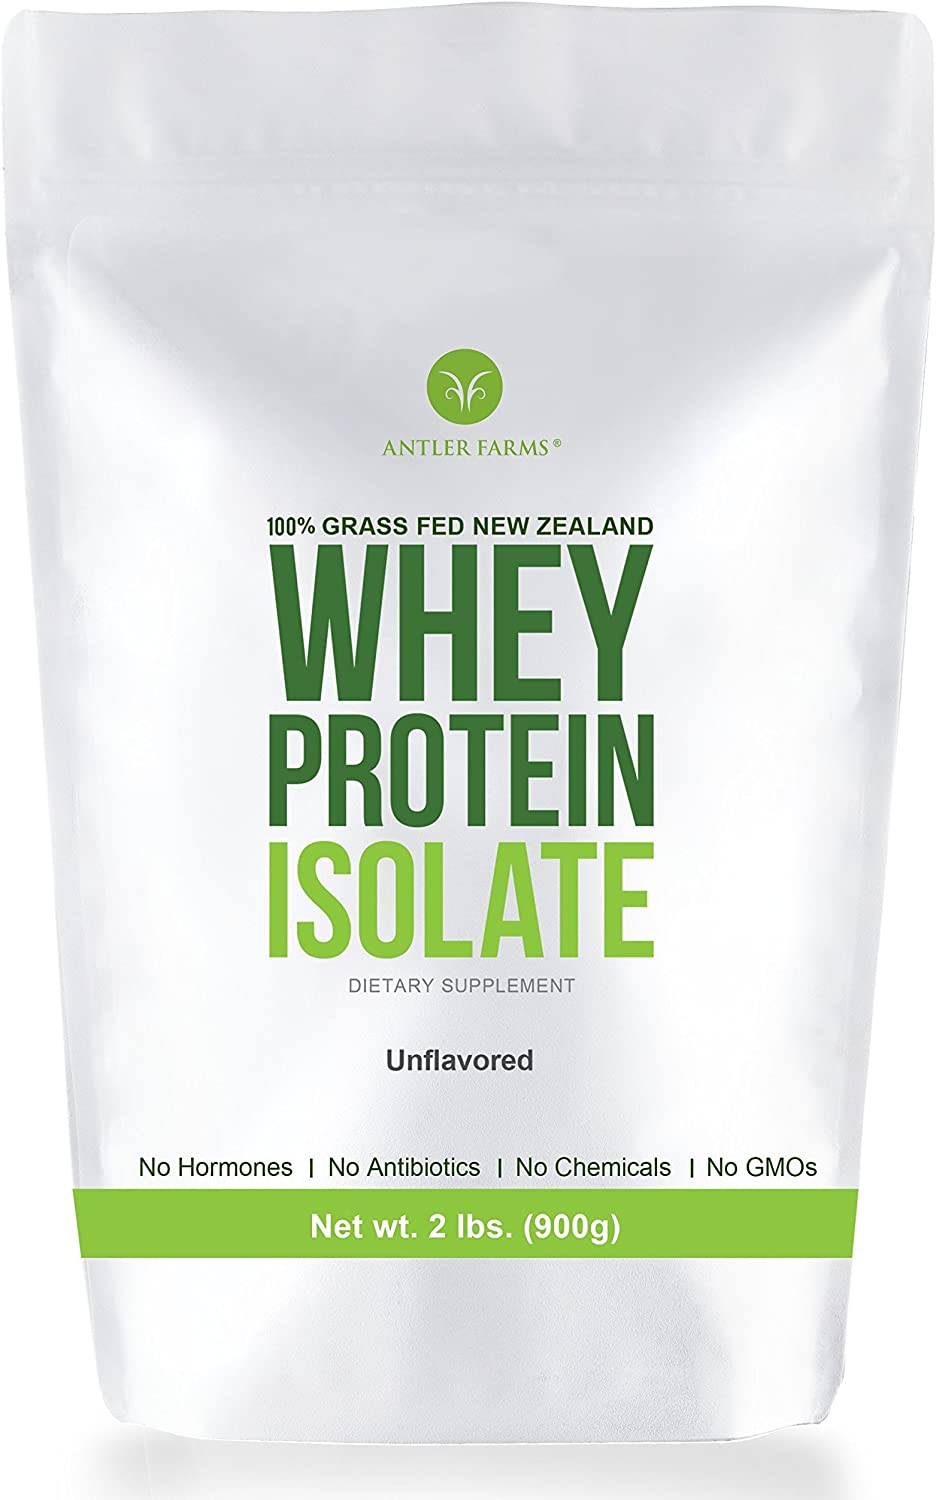 Antler Farms - 100% Grass Fed New Zealand Whey Protein Isolate, Pure, Clean, Unflavored, 30 Servings, 2 lbs - Cold Processed, Rapidly Absorbed, Keto Friendly, Pure and Clean rBGH Free, No Sugar